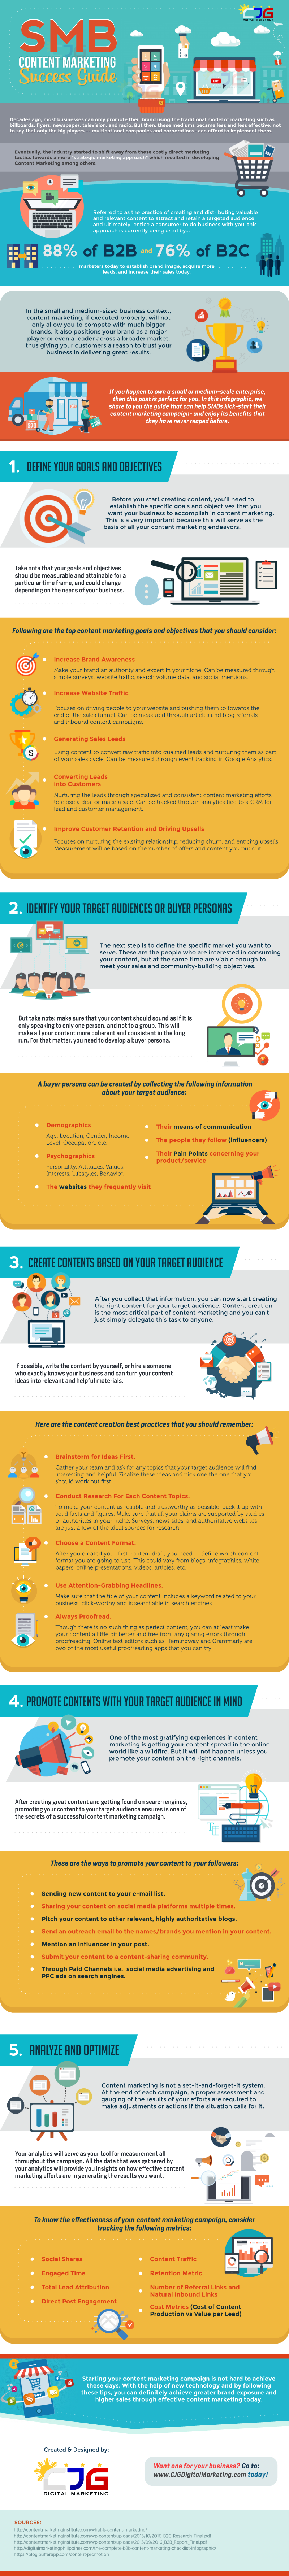 SMB_Content_Marketing_Success_Guide_HD